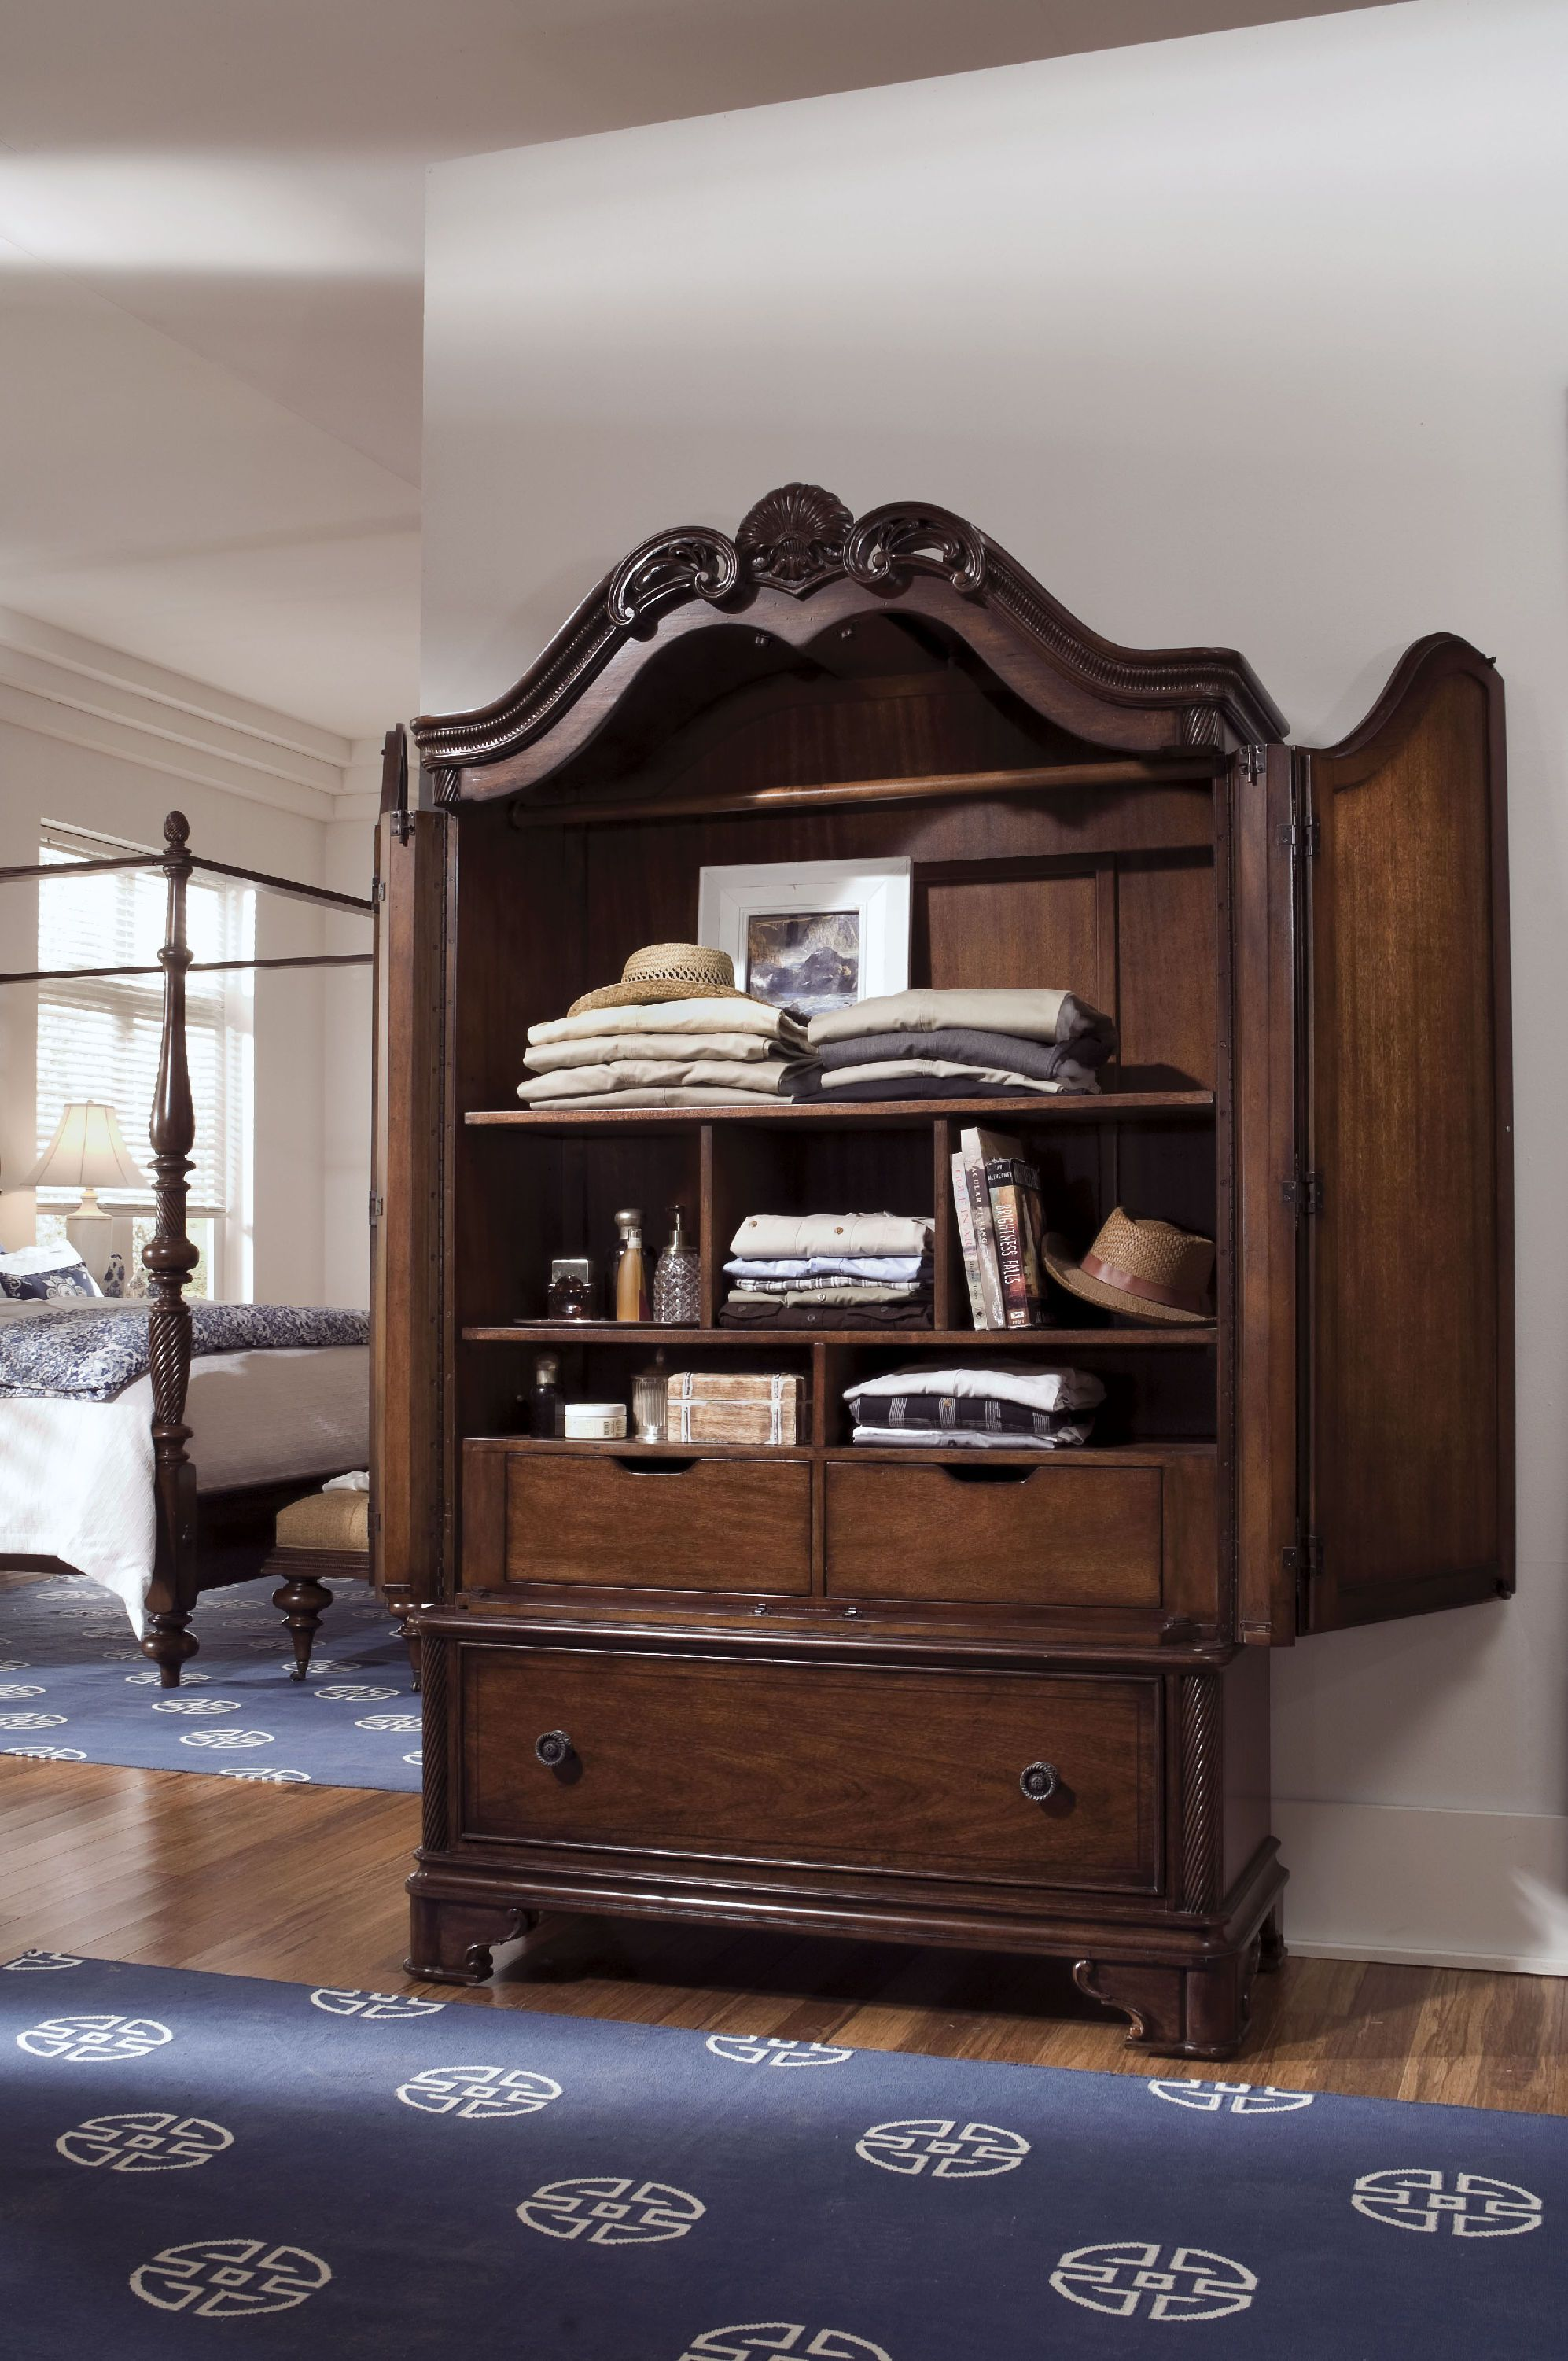 Bedroom Chairs Furniture Village Menu Harbour Chair Upholstery/steel Base Art Wardrobe Top 168161 1930tp The